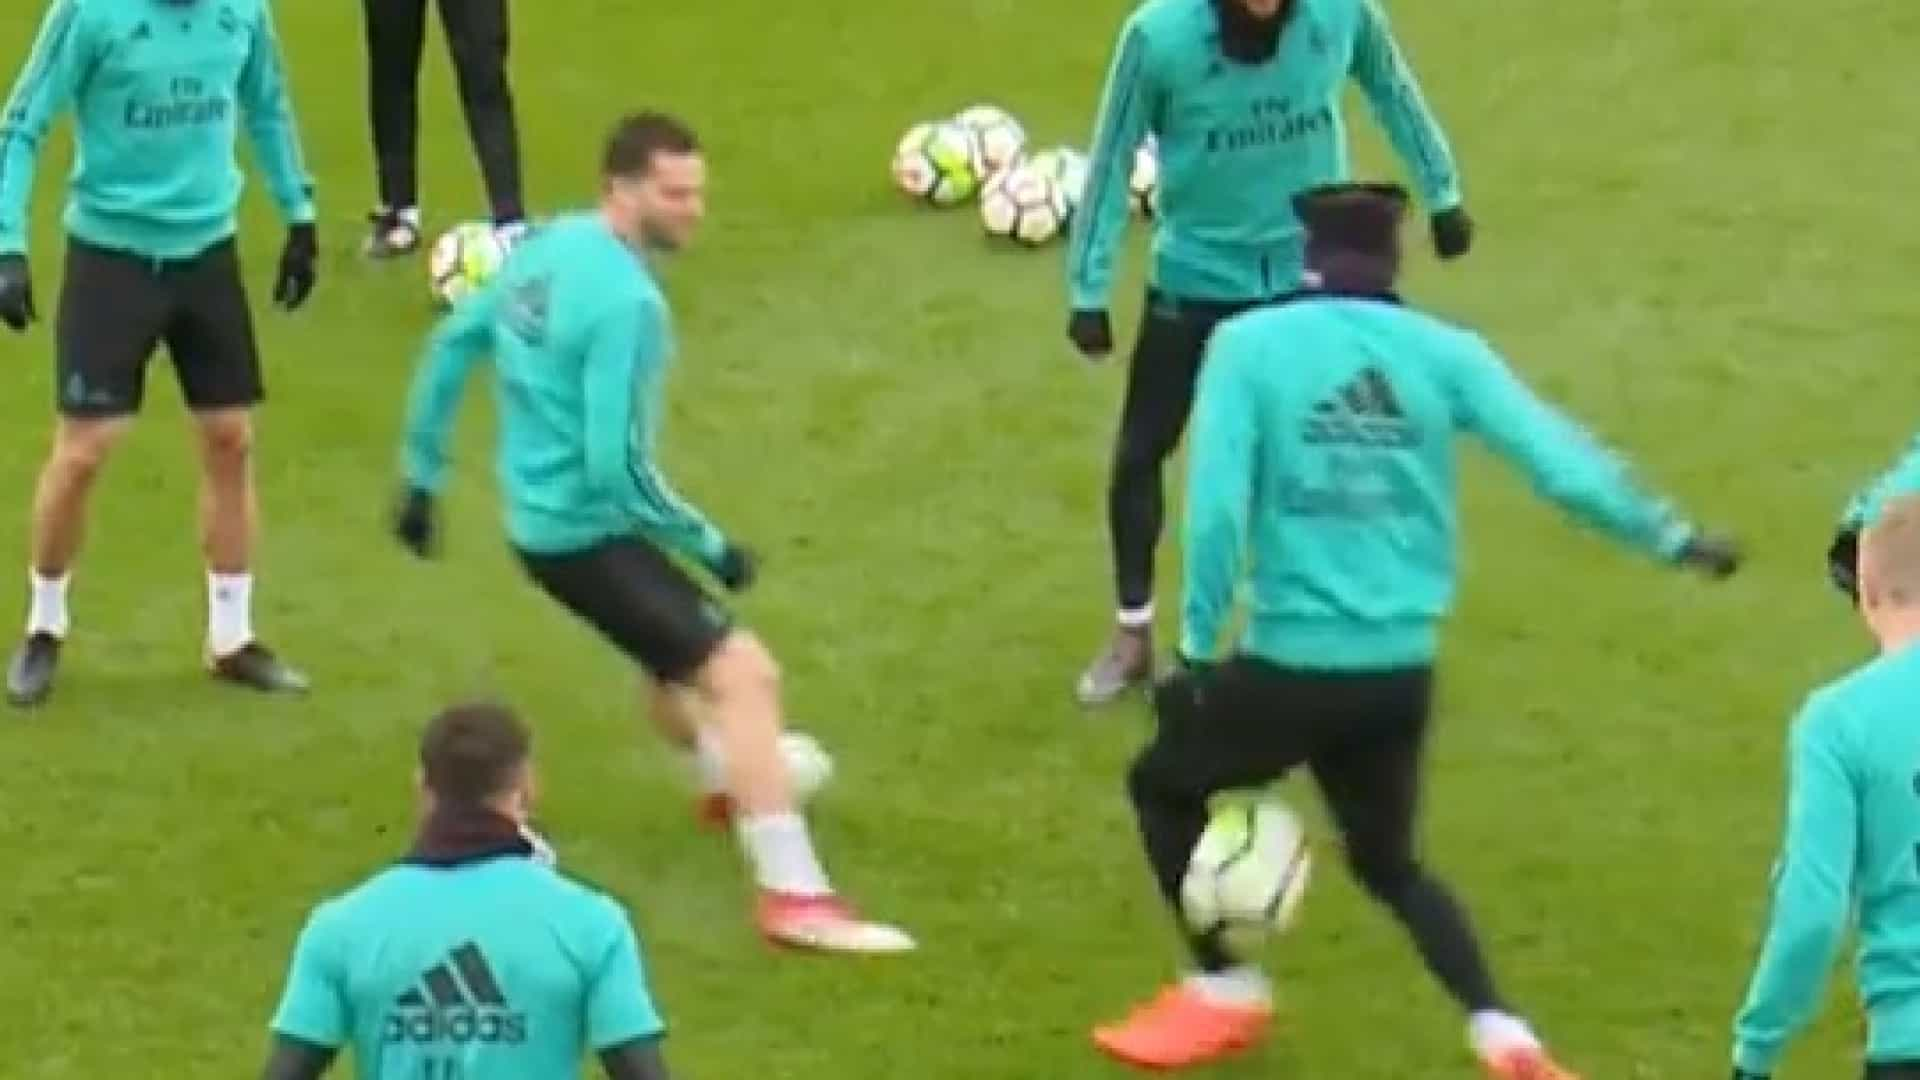 Theo é a nova 'vítima' no treino do Real Madrid